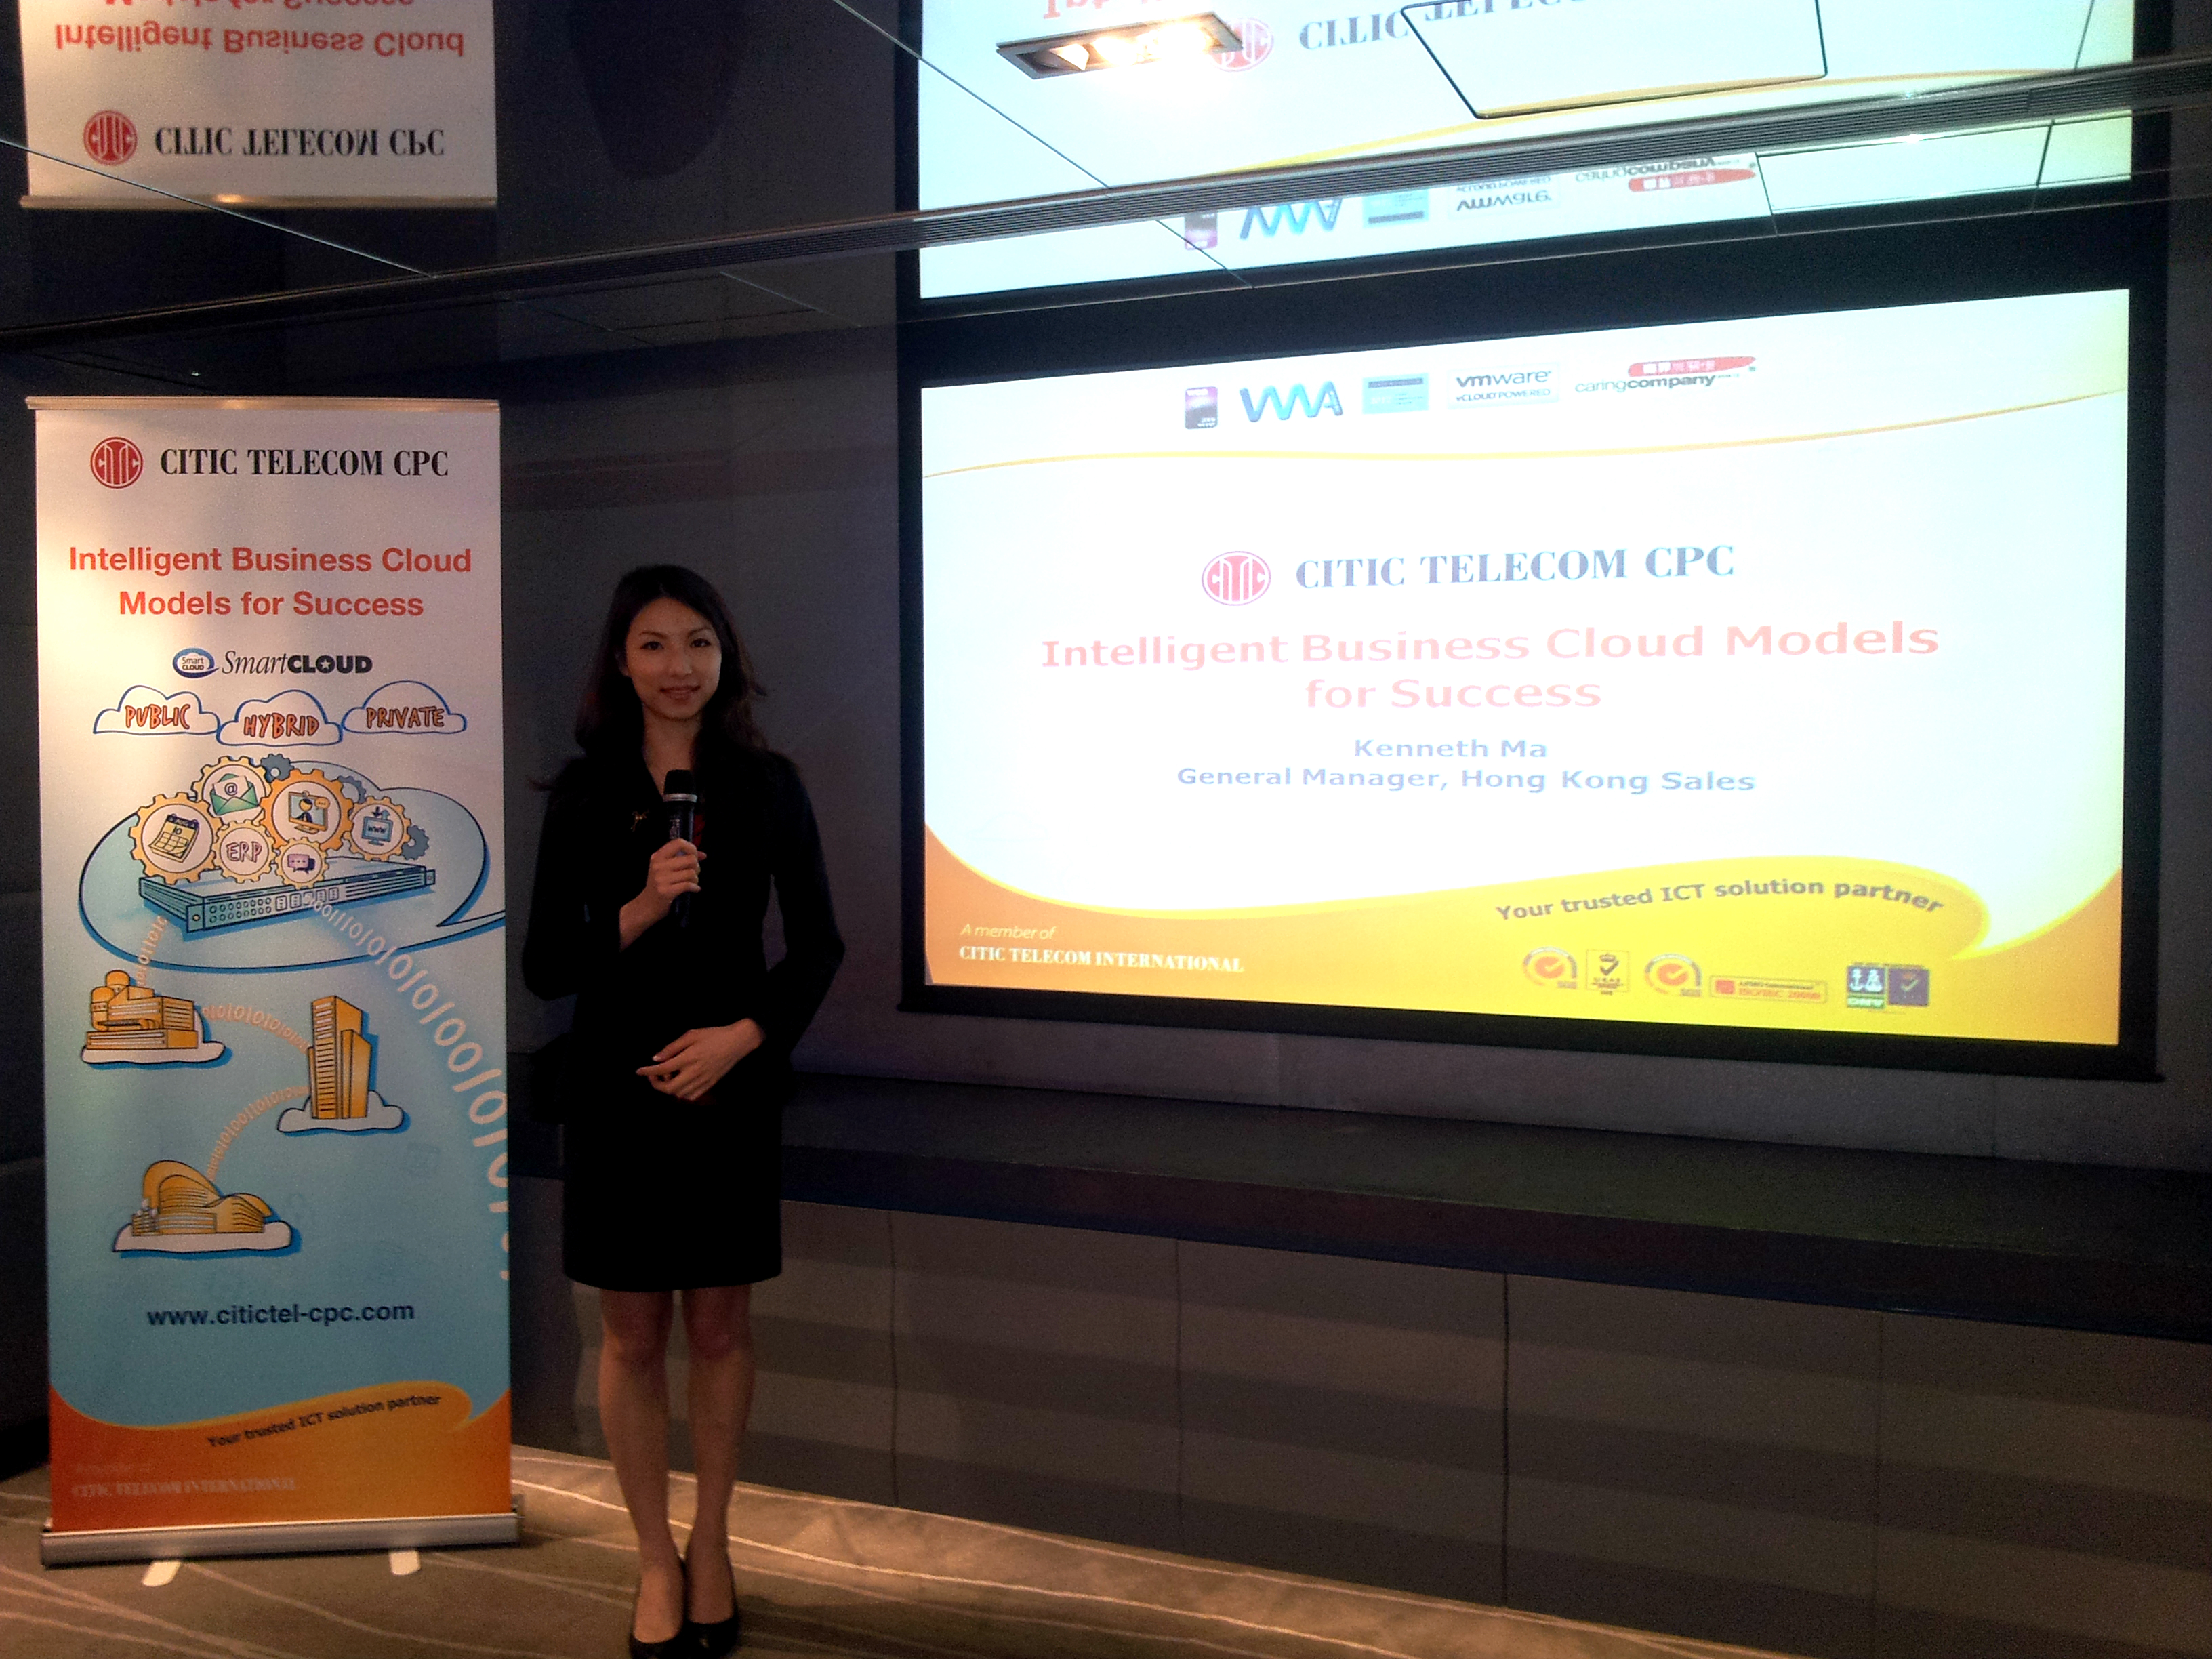 CITIC Telecom: Intelligent Business Cloud Models for Success Luncheon Event (English)